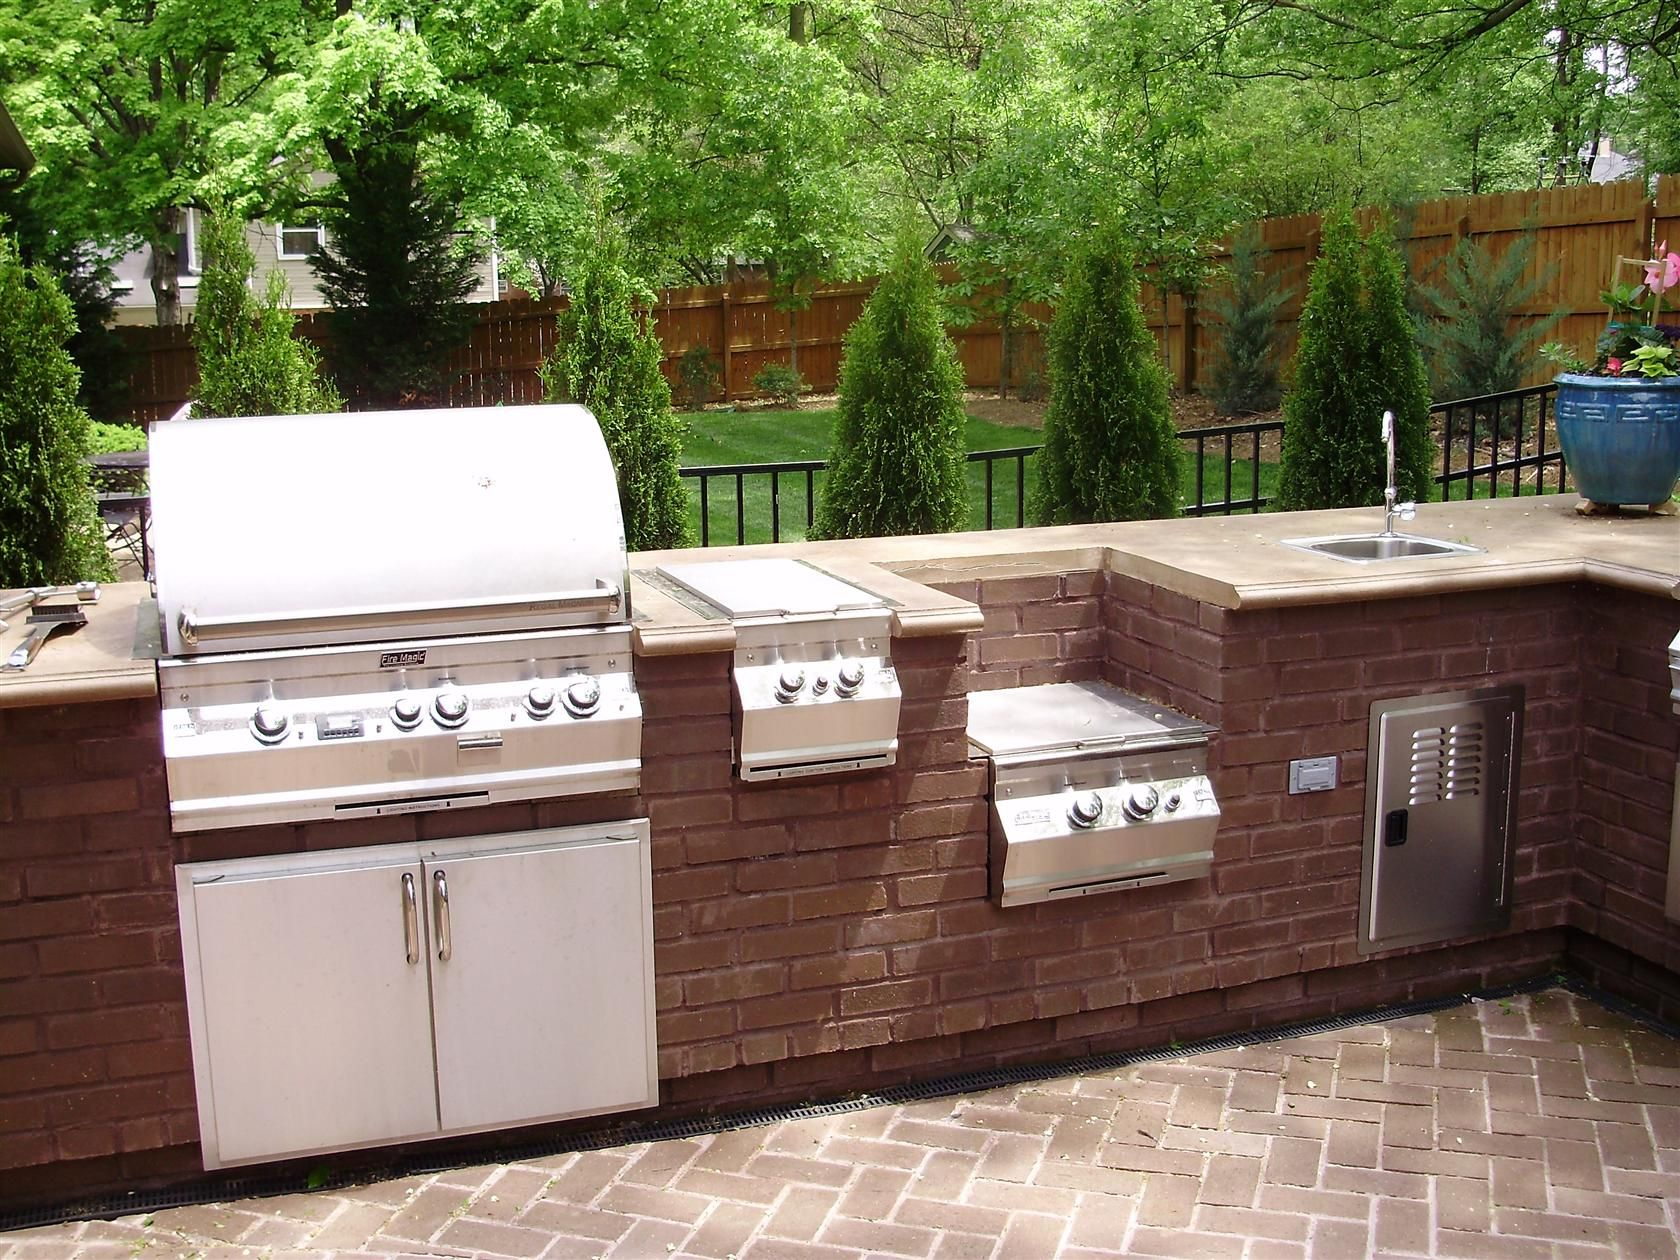 Amazing Outdoor Kitchen Ideas | Design küchen, Küchen design und ...